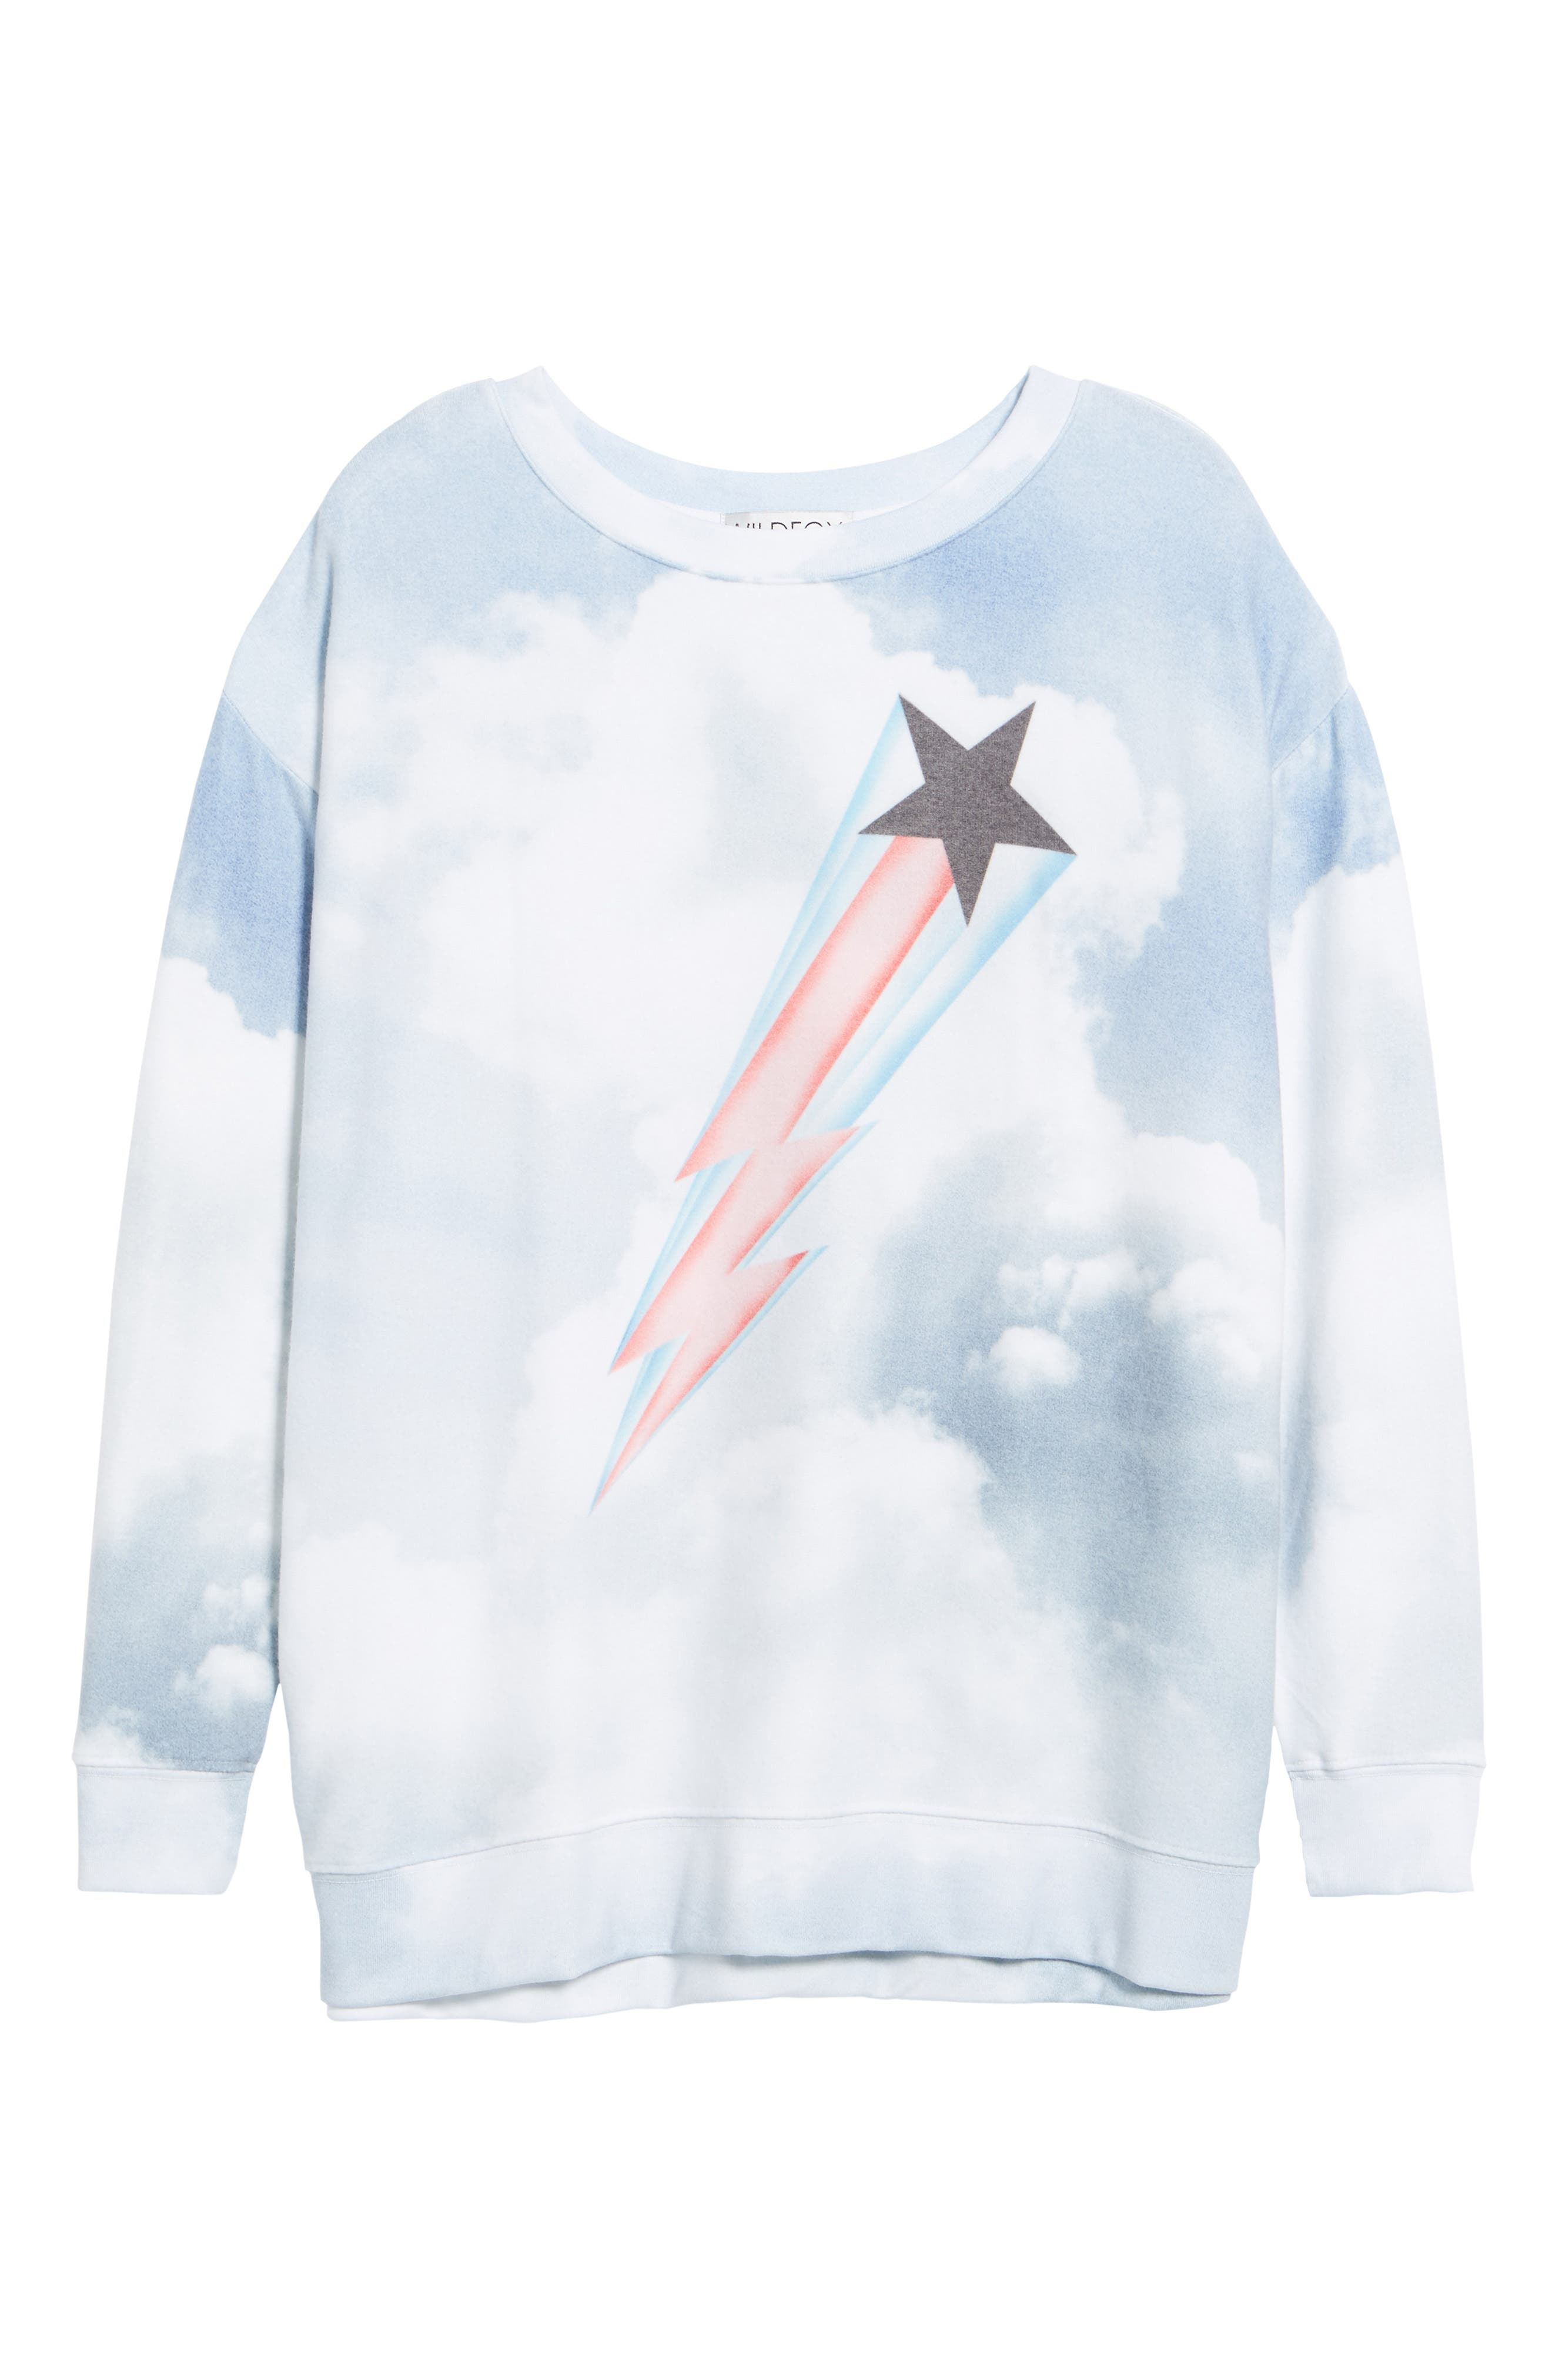 Heavens Roadtrip Sweatshirt,                             Alternate thumbnail 6, color,                             660